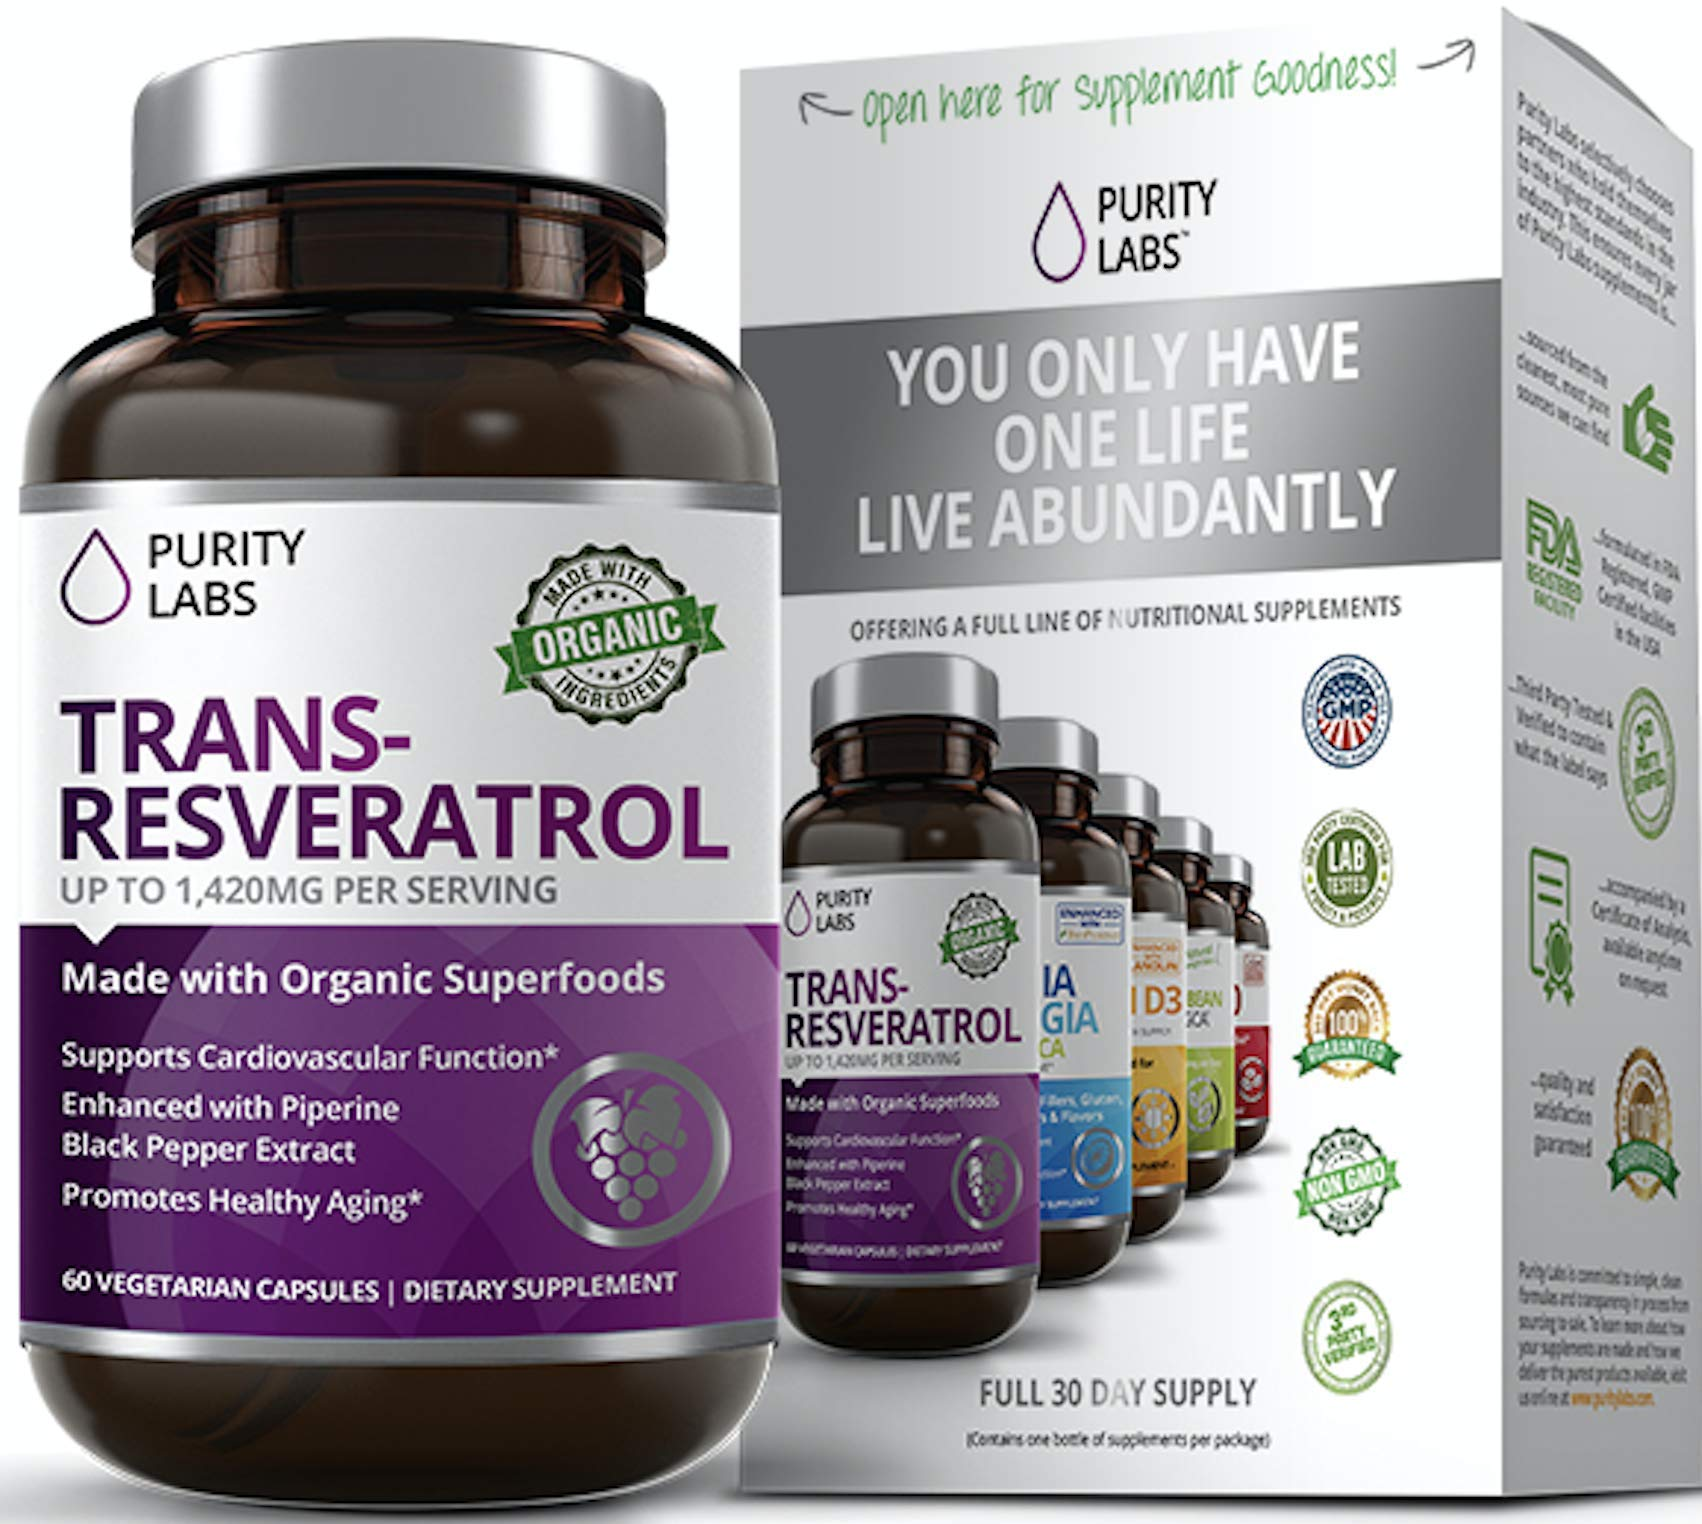 Abundant Health Trans-Resveratrol Anti-aging Blend Supplement with Green Tea, Acai, Grape Seed Extract, and Antioxidant Vitamin C, 60 Capsules by Purity Labs